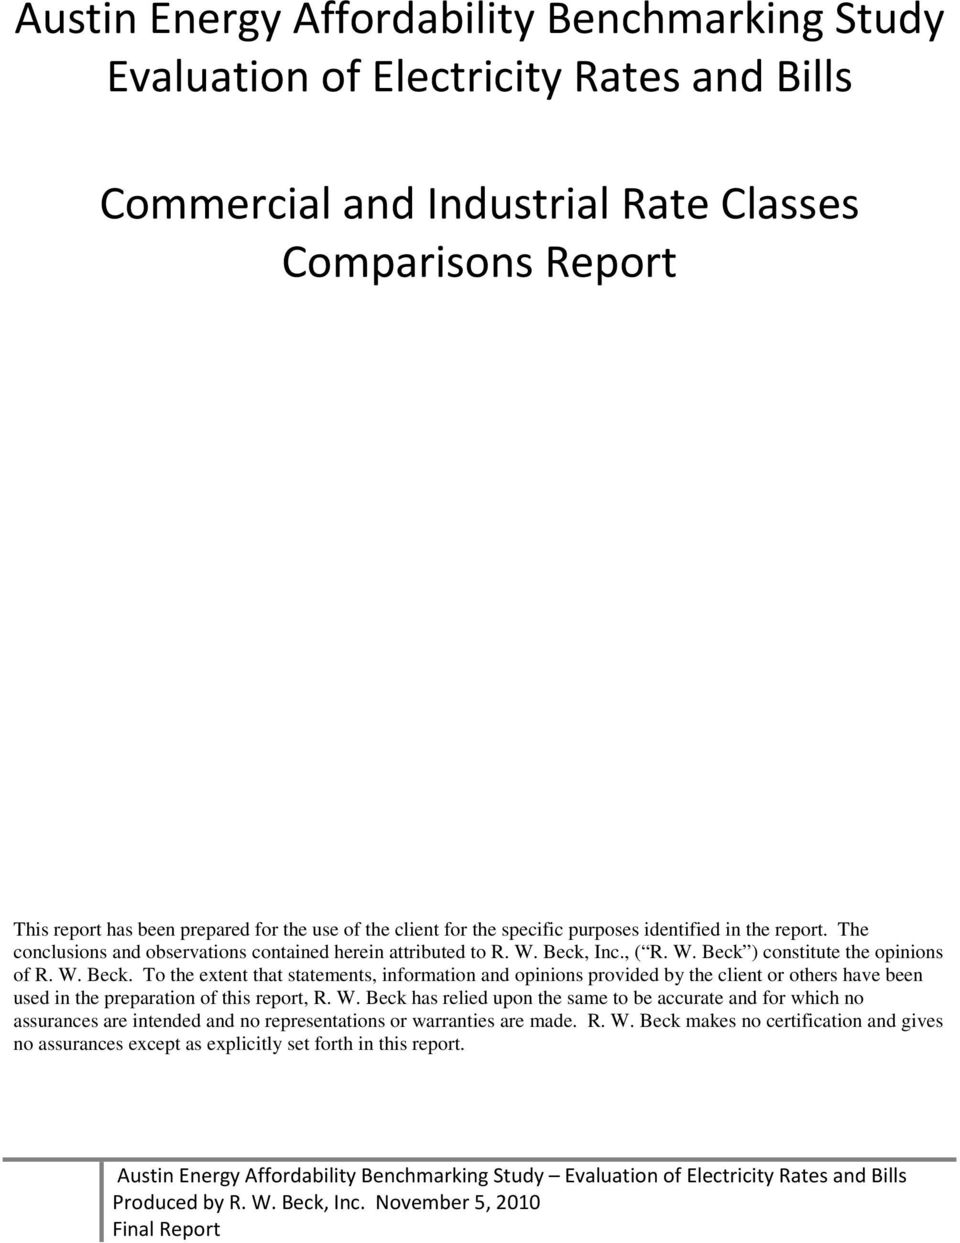 Commercial and Industrial Rate Classes Comparisons Final